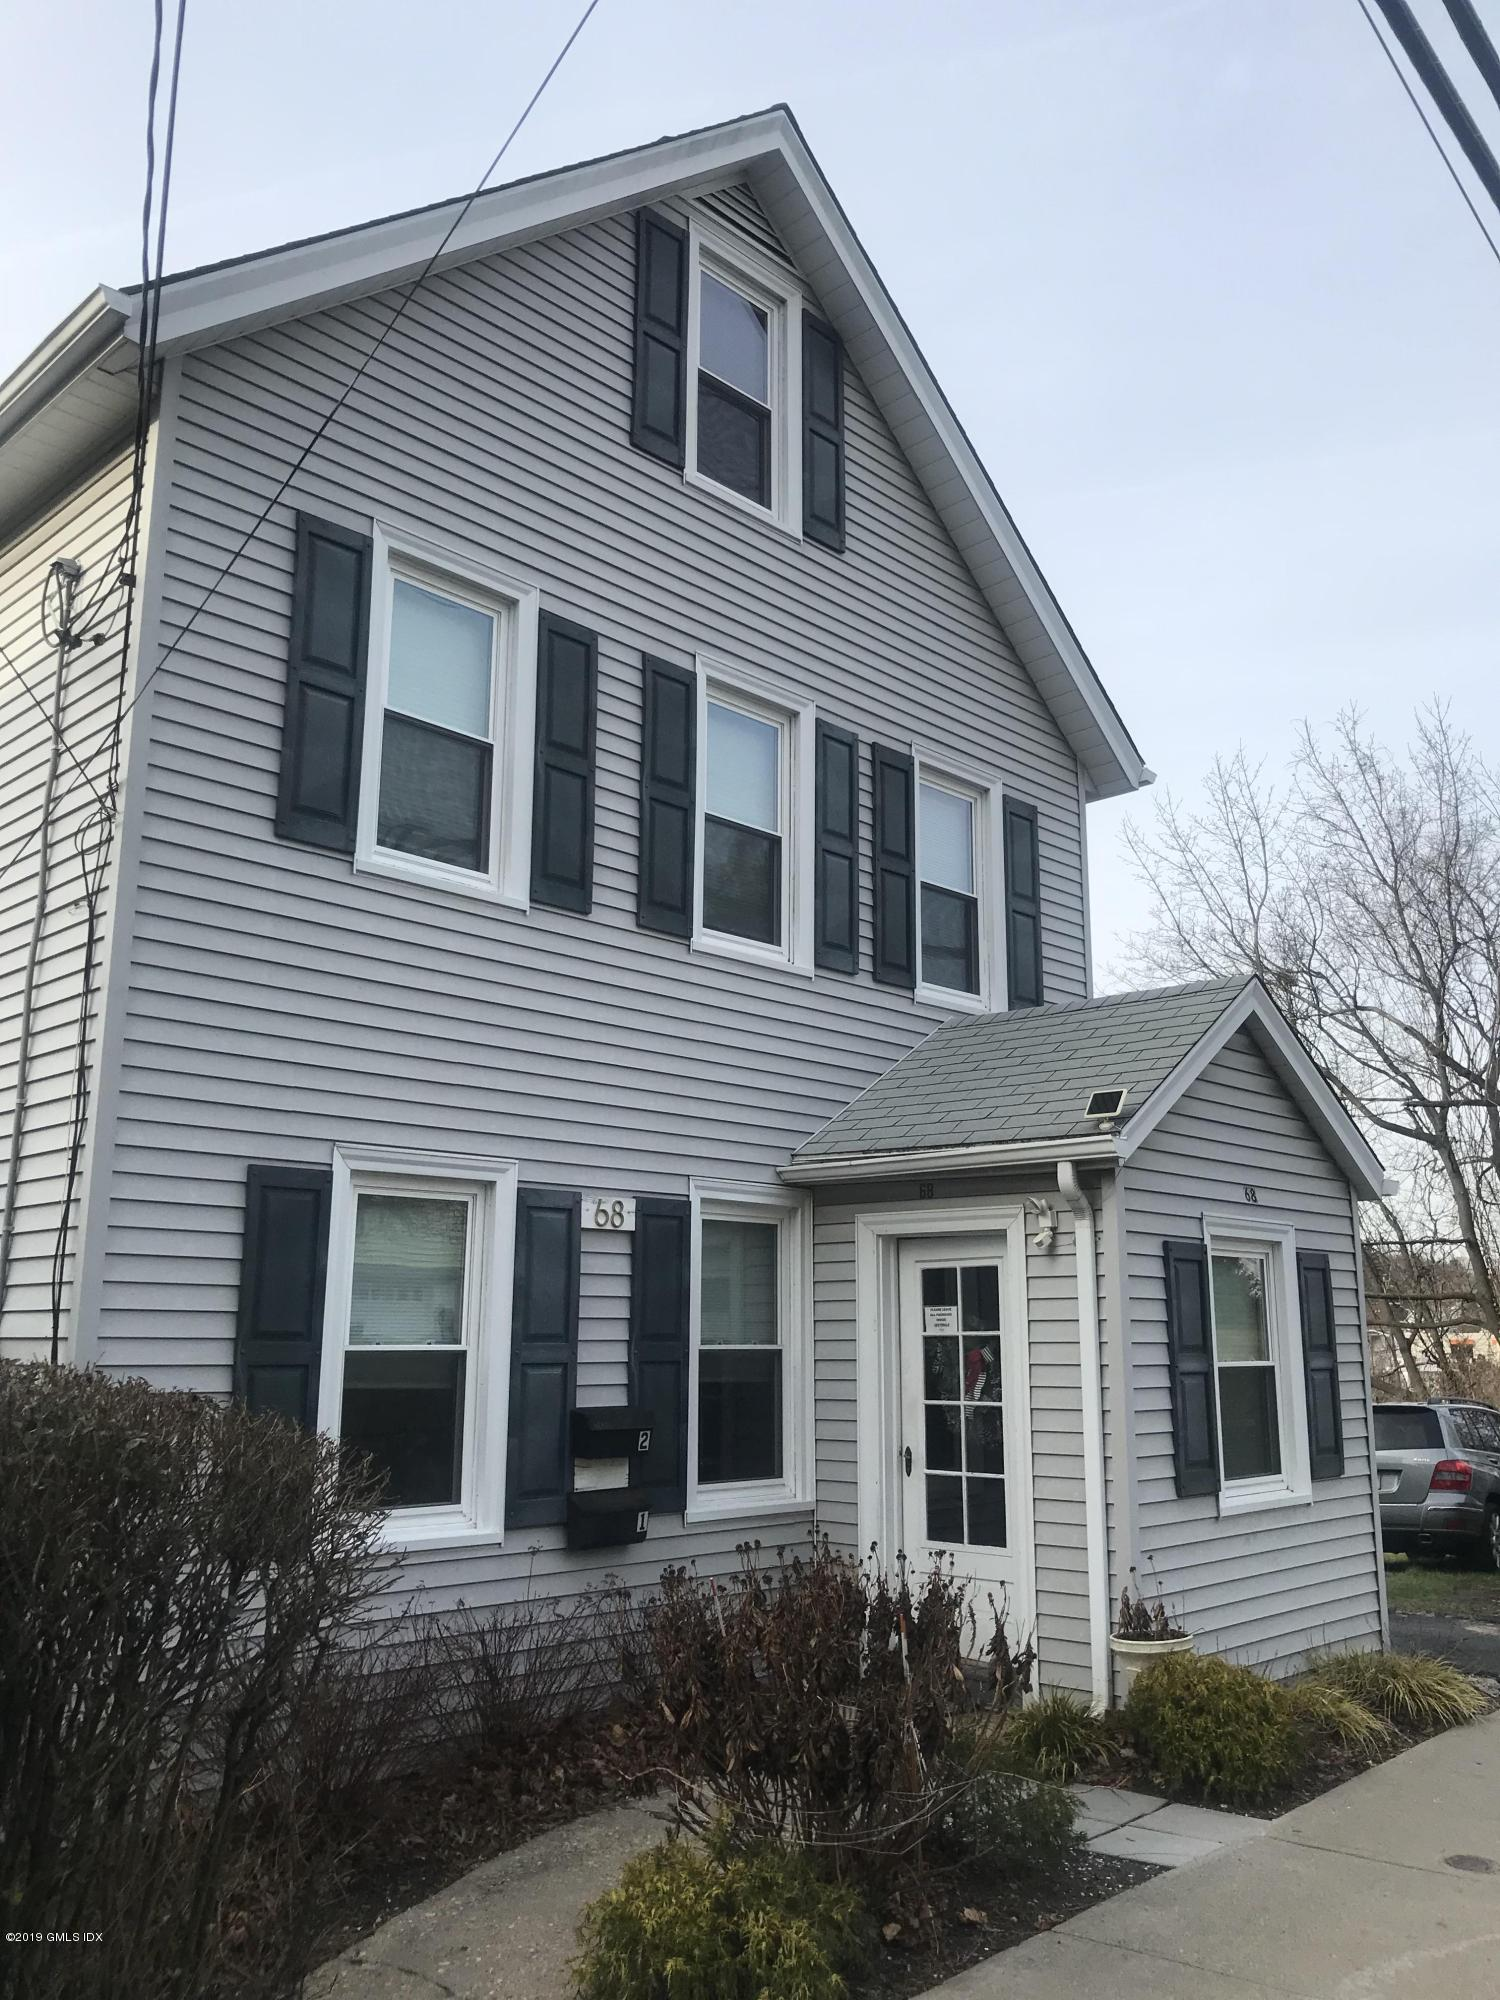 68 Byram Road, Greenwich, Connecticut 06830, 1 Bedroom Bedrooms, ,1 BathroomBathrooms,Multi-family - 2 units,For Rent,Byram,112237